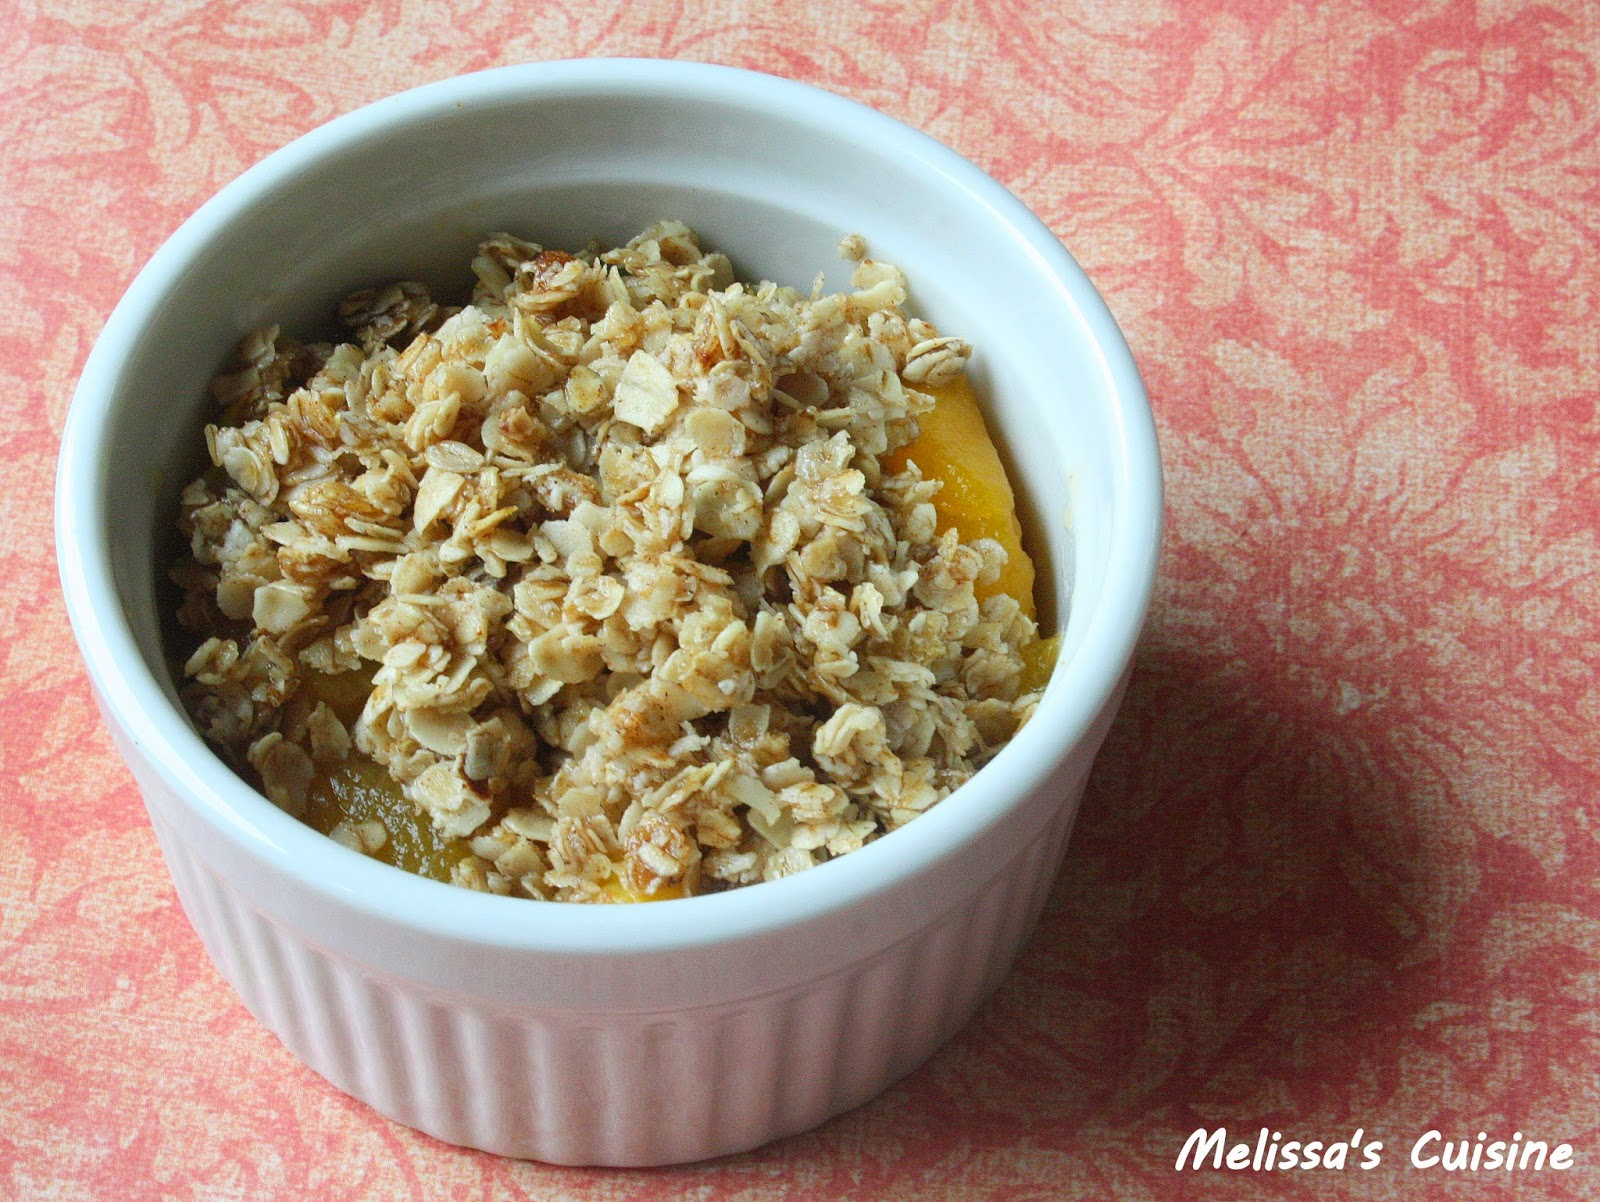 Melissa's Cuisine: Single Serving Clean Eating Peach Crisp